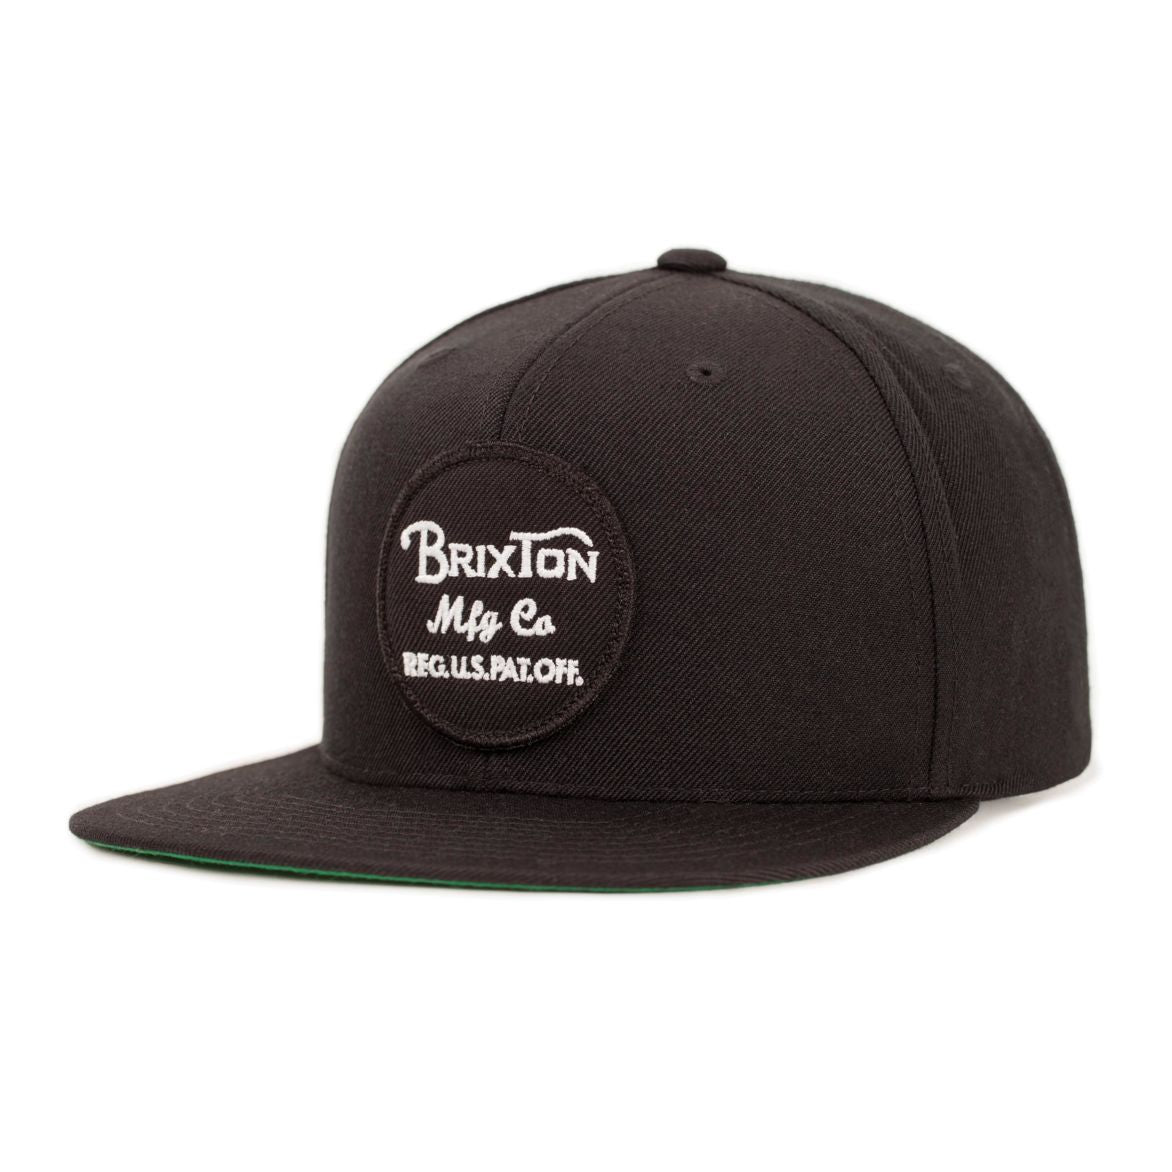 Wheeler Snapback in Black - Brixton